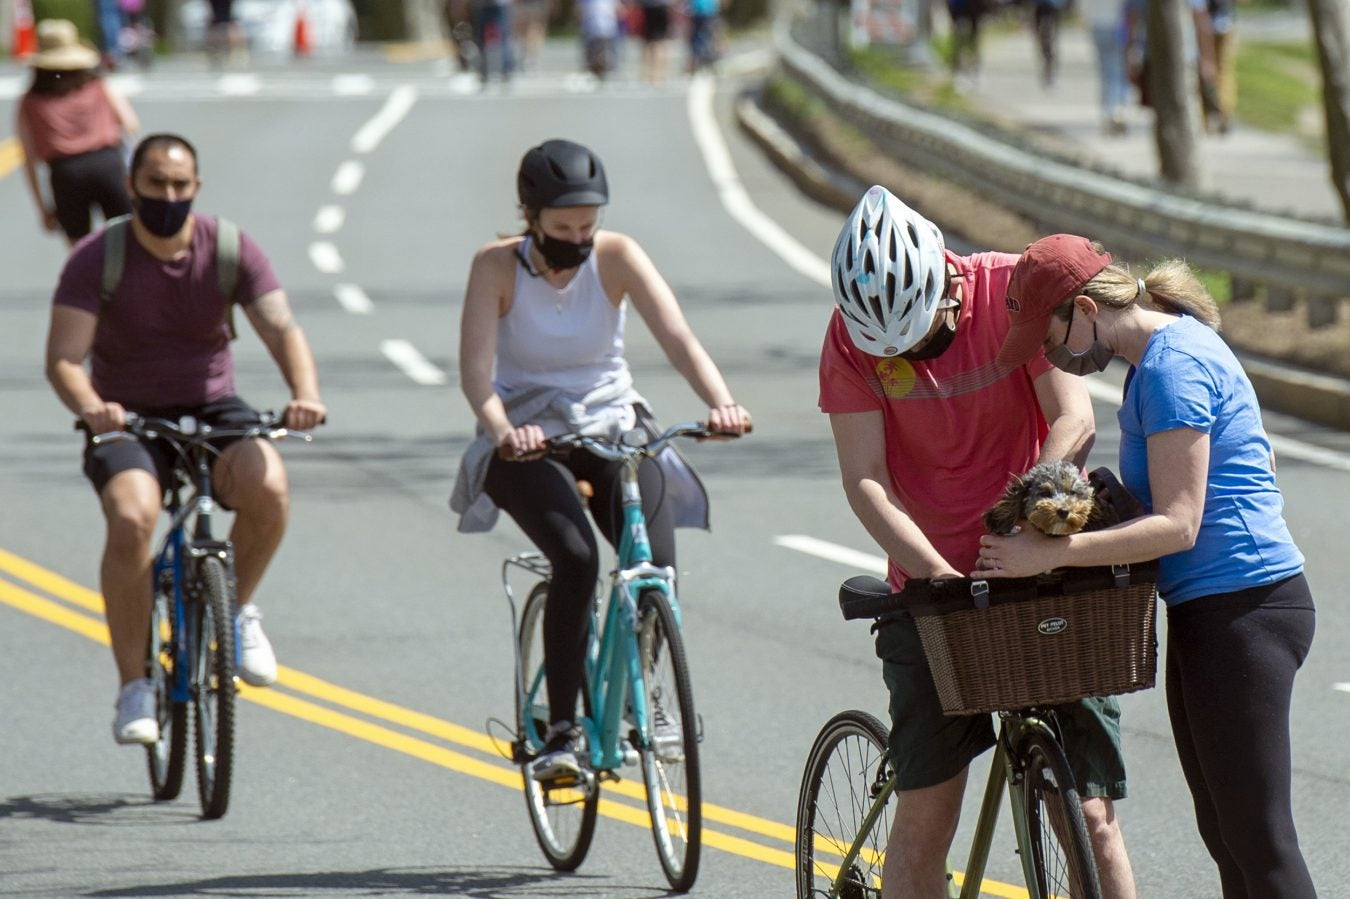 Sam Lazarus, a 2016 graduate of Harvard Business School, right, and Molly Levitt, 2010 from the Harvard Graduate School of Education, try to get their cockapoo comfortable in its new bicycle basket.